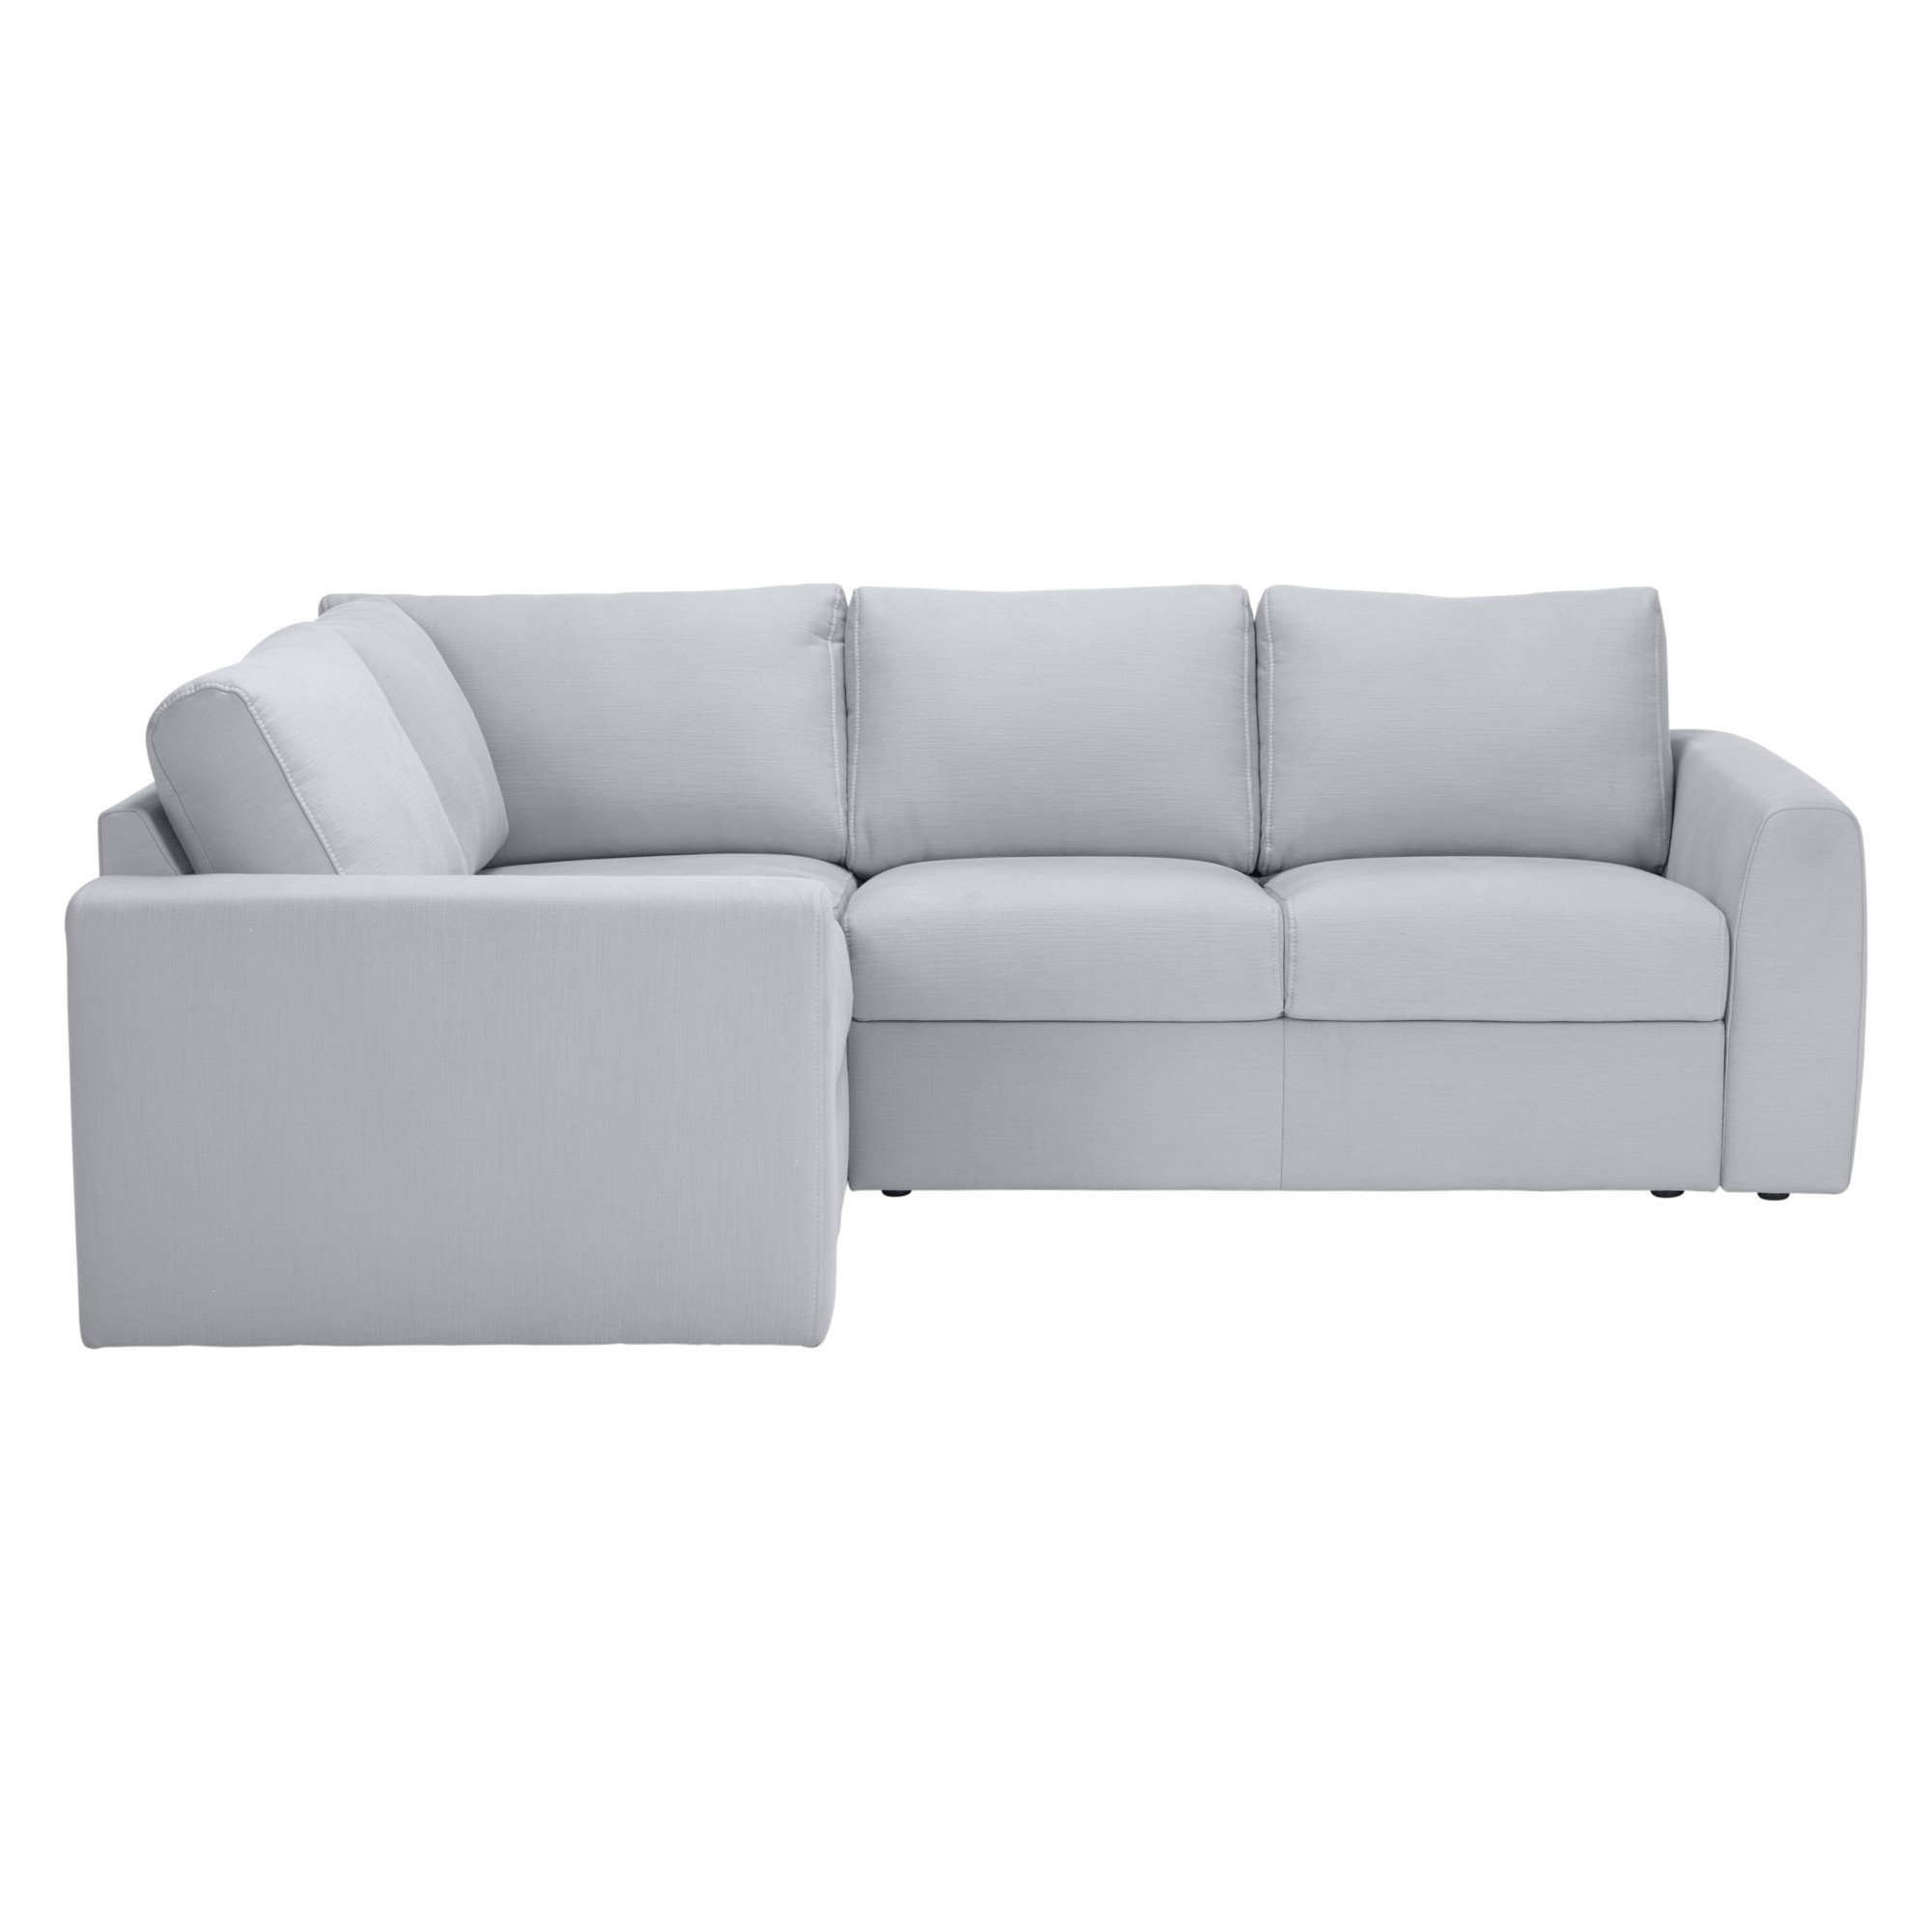 House by John Lewis Finlay II LHF / RHF Corner End Sofa